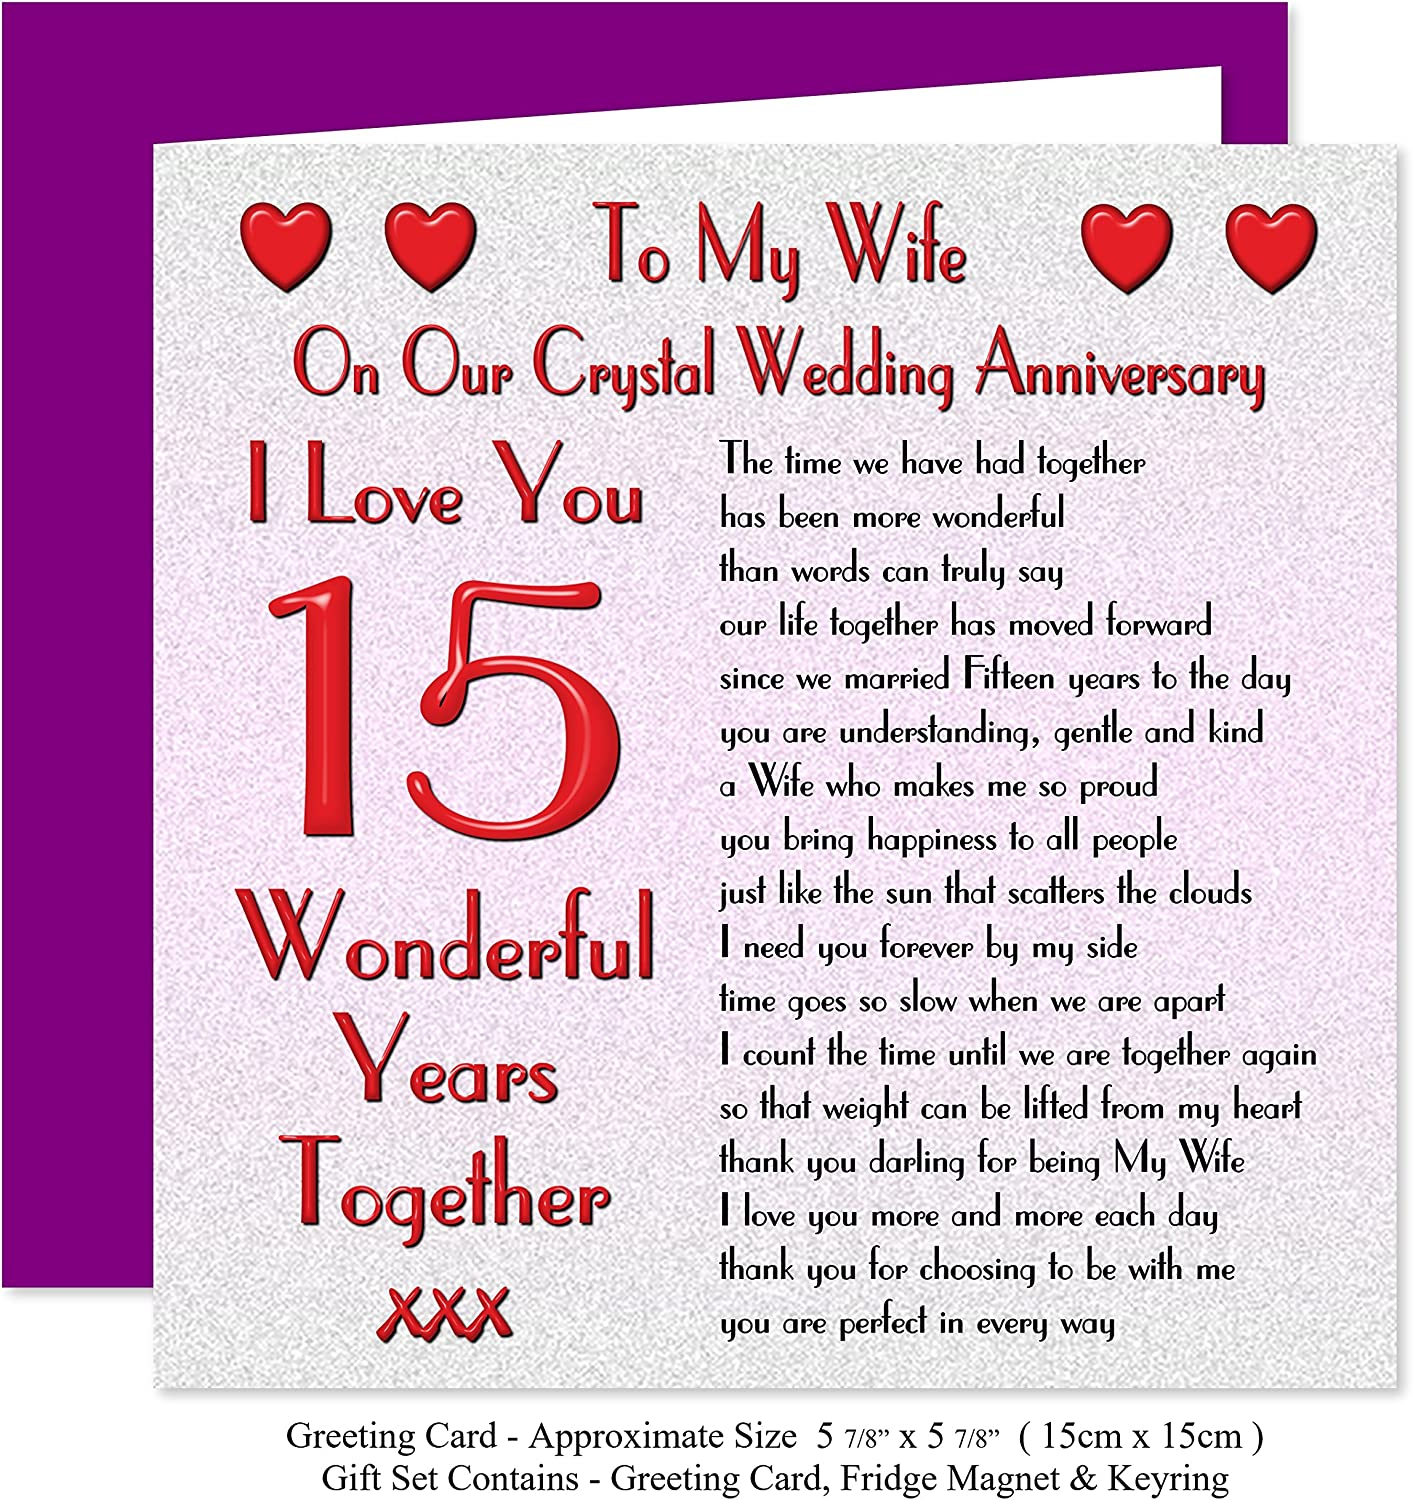 My Wife 8th Wedding Anniversary Gift Set - Card, Keyring & Fridge Magnet  Present - On Our Crystal Anniversary - 8 Years - Sentimental Verse I Love